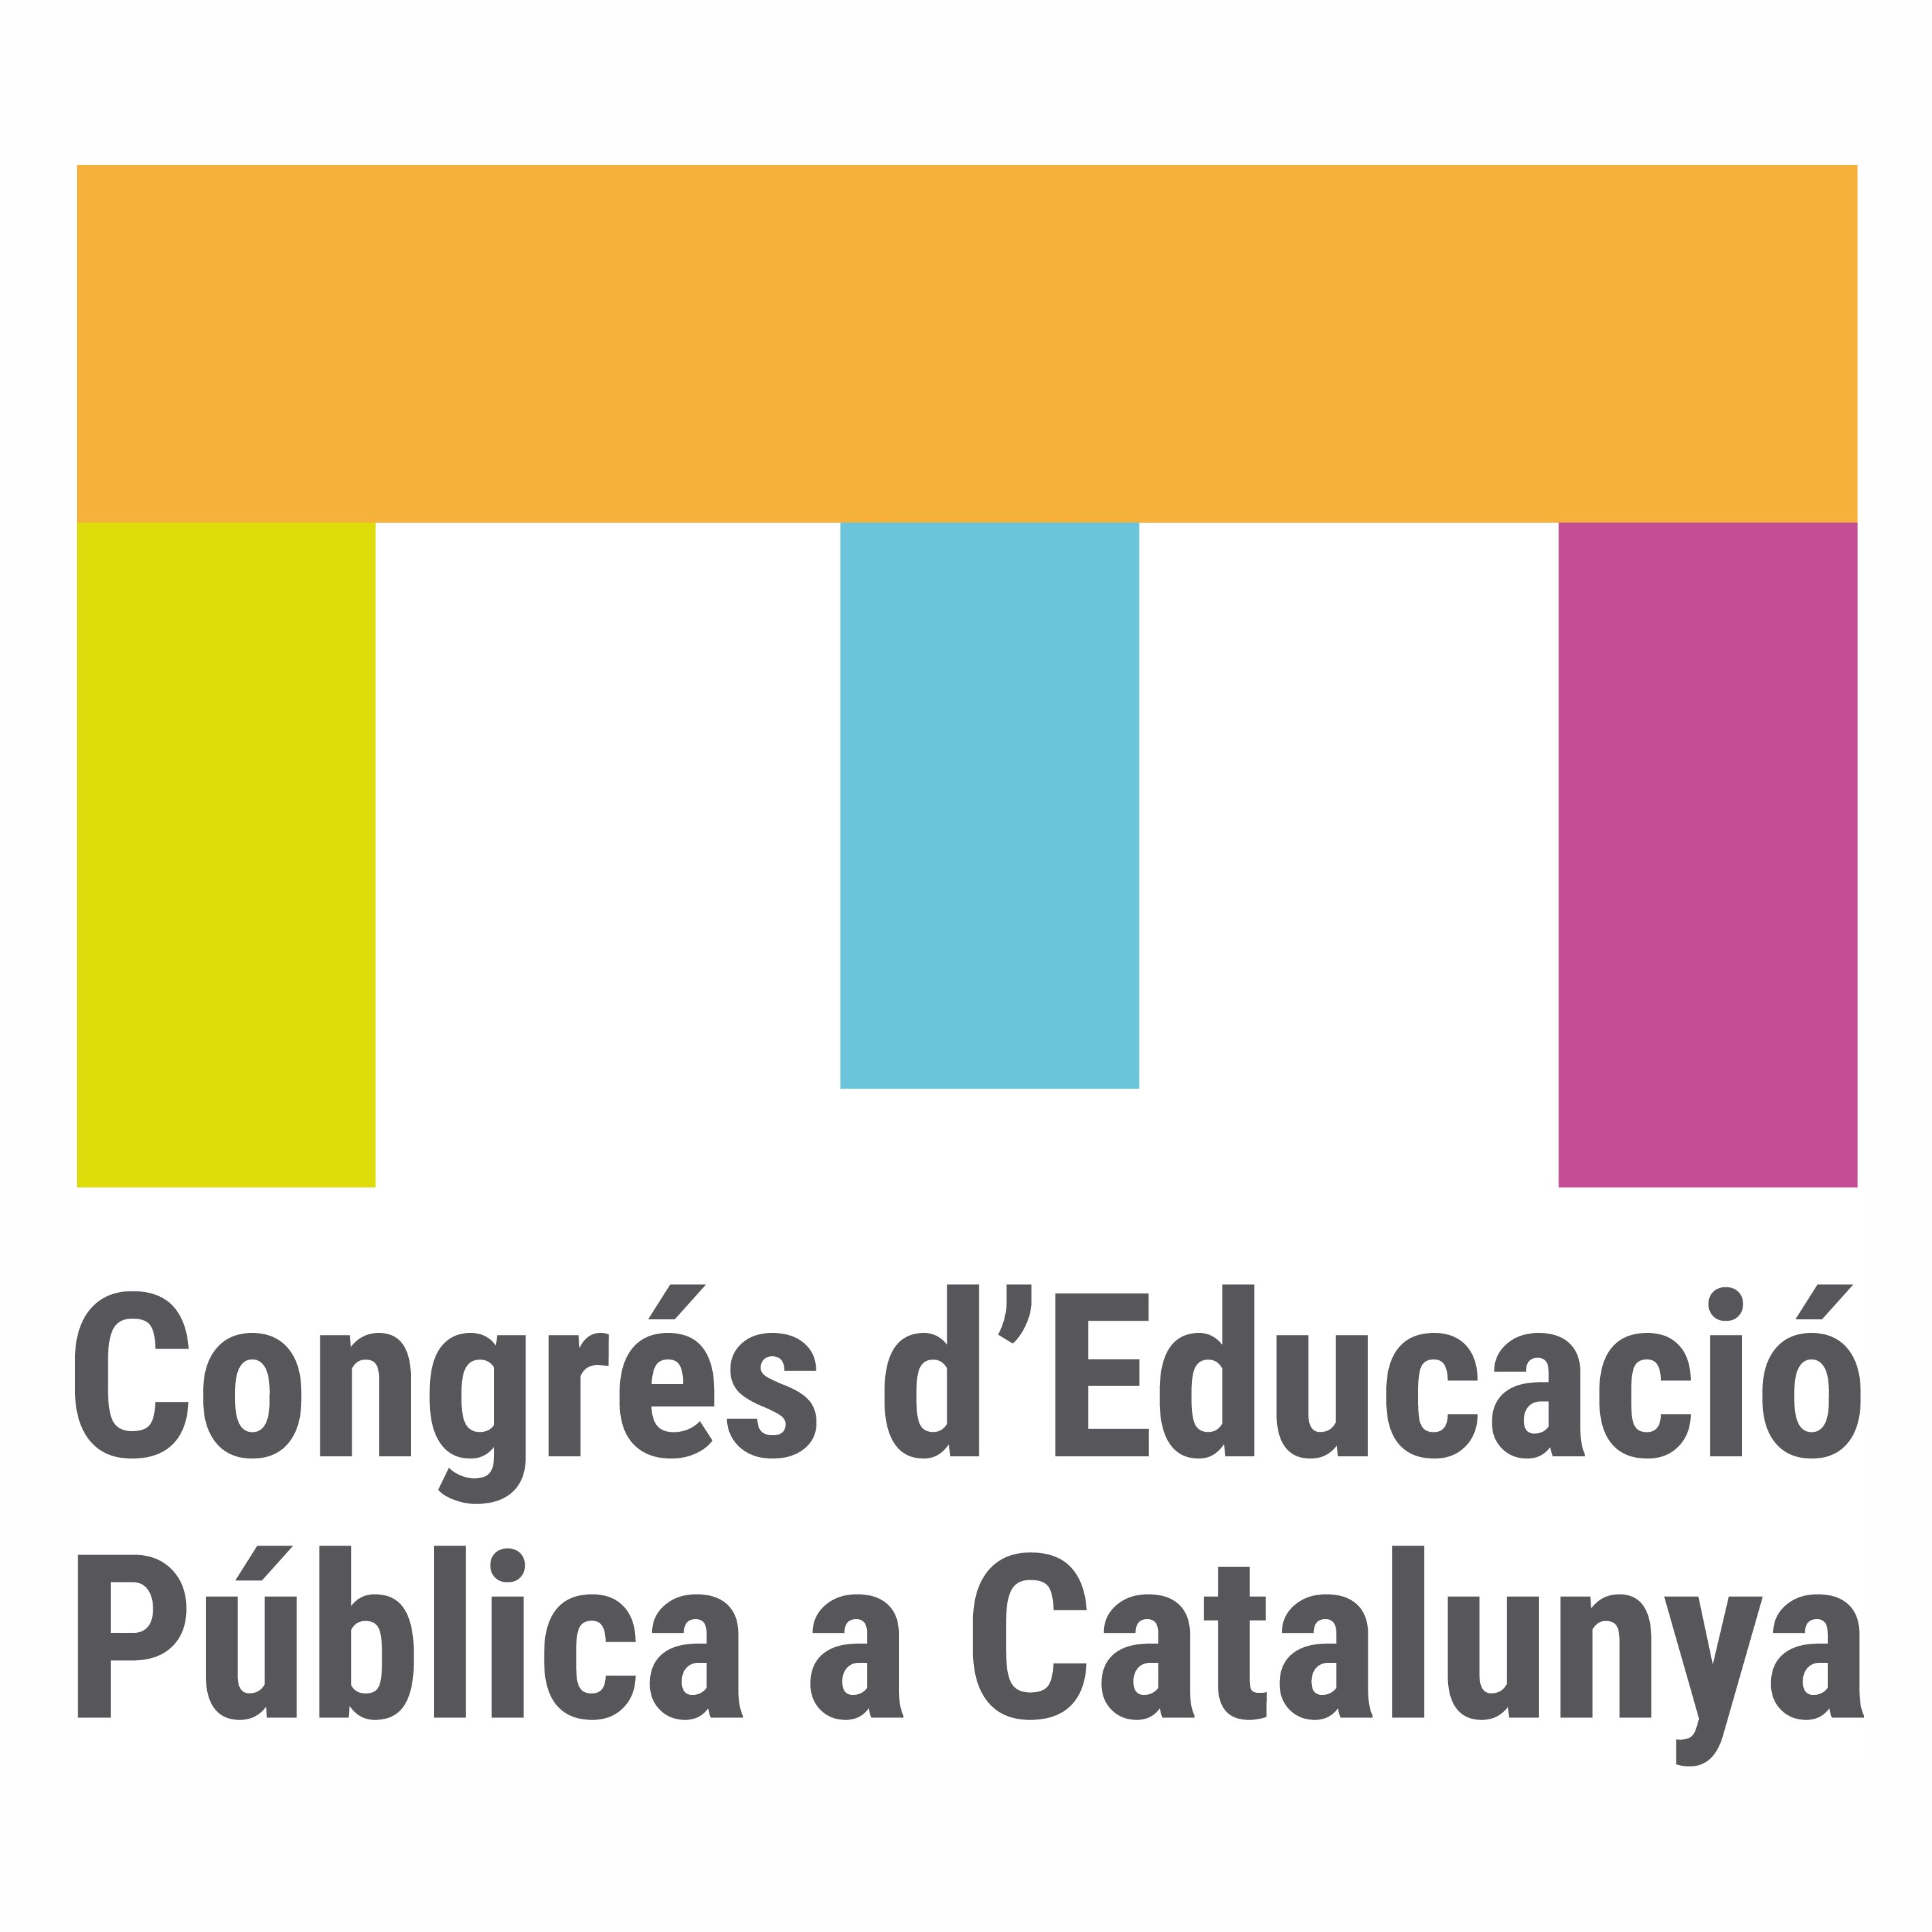 https://congreseducaciopublica.wordpress.com/